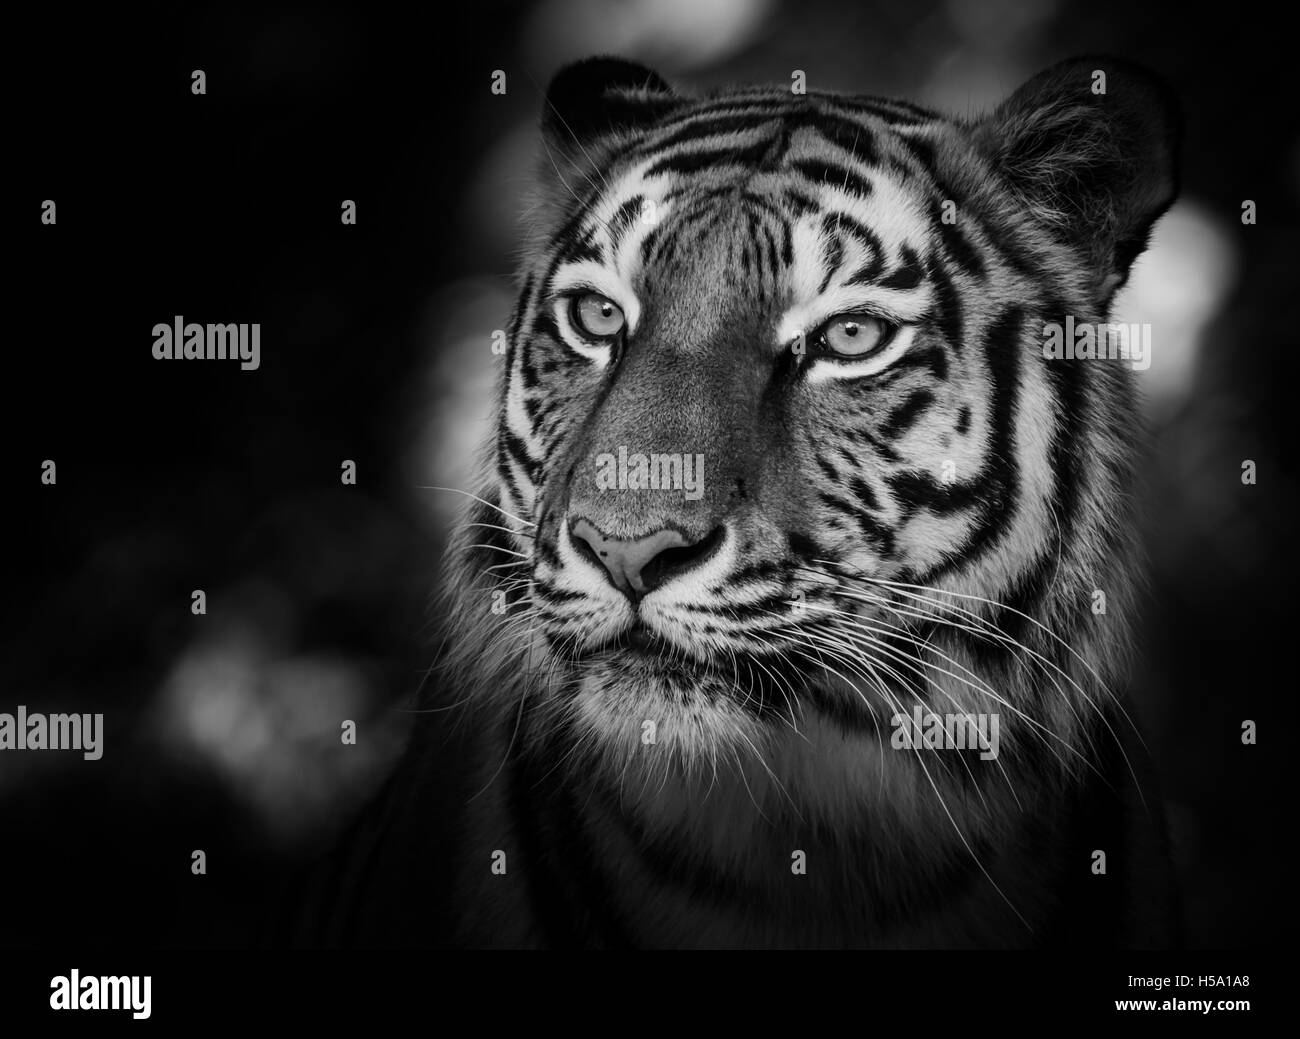 Portrait of a siberian tiger (Panthera tigris altaica) in black and white - Stock Image